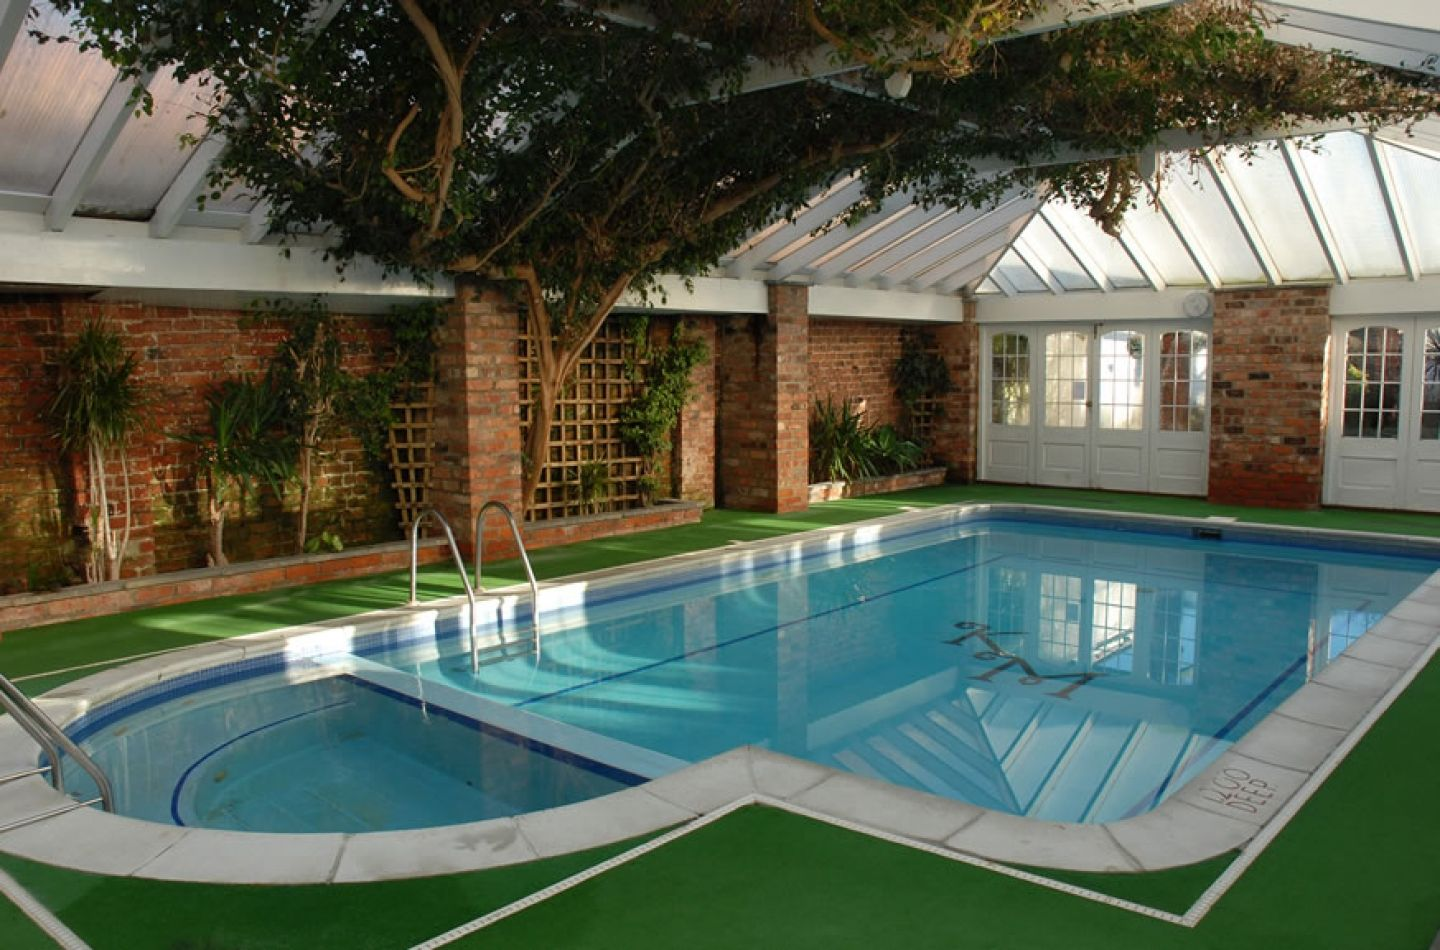 pool designs - House Pools Design